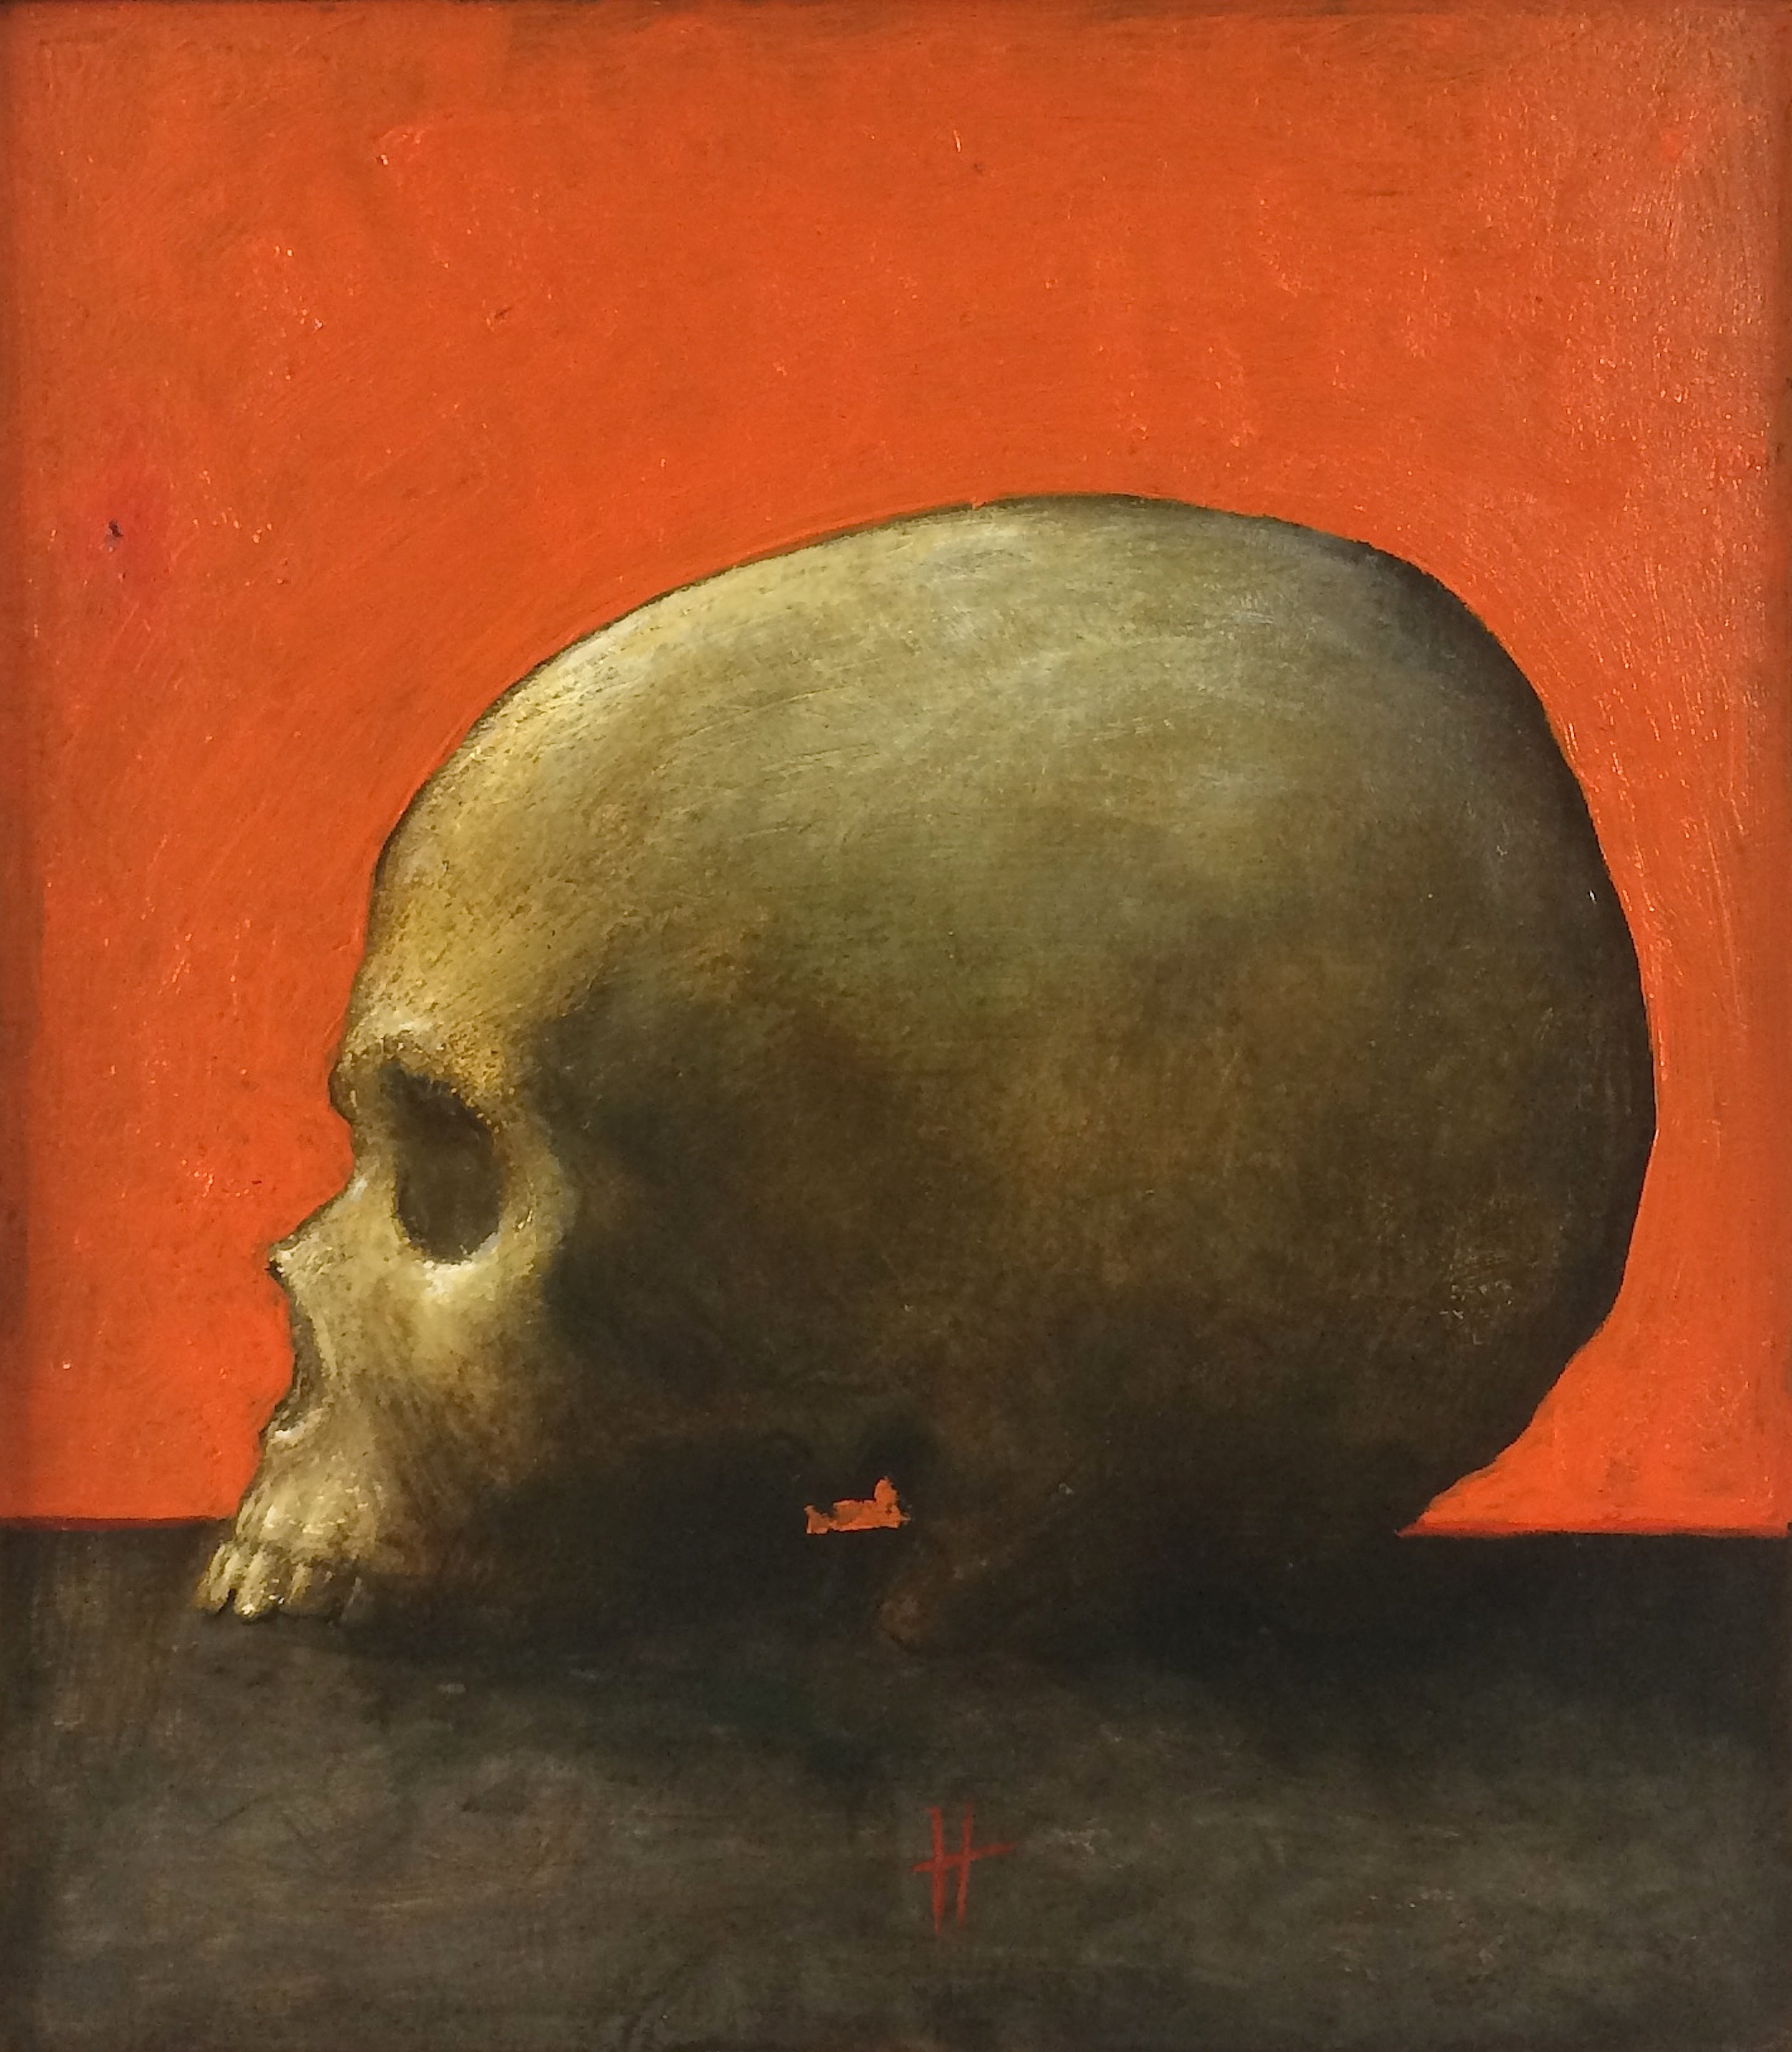 Title: Study for Skull  Size: 29 x 25 cm  Medium: Oil on panel  Price: £1,800